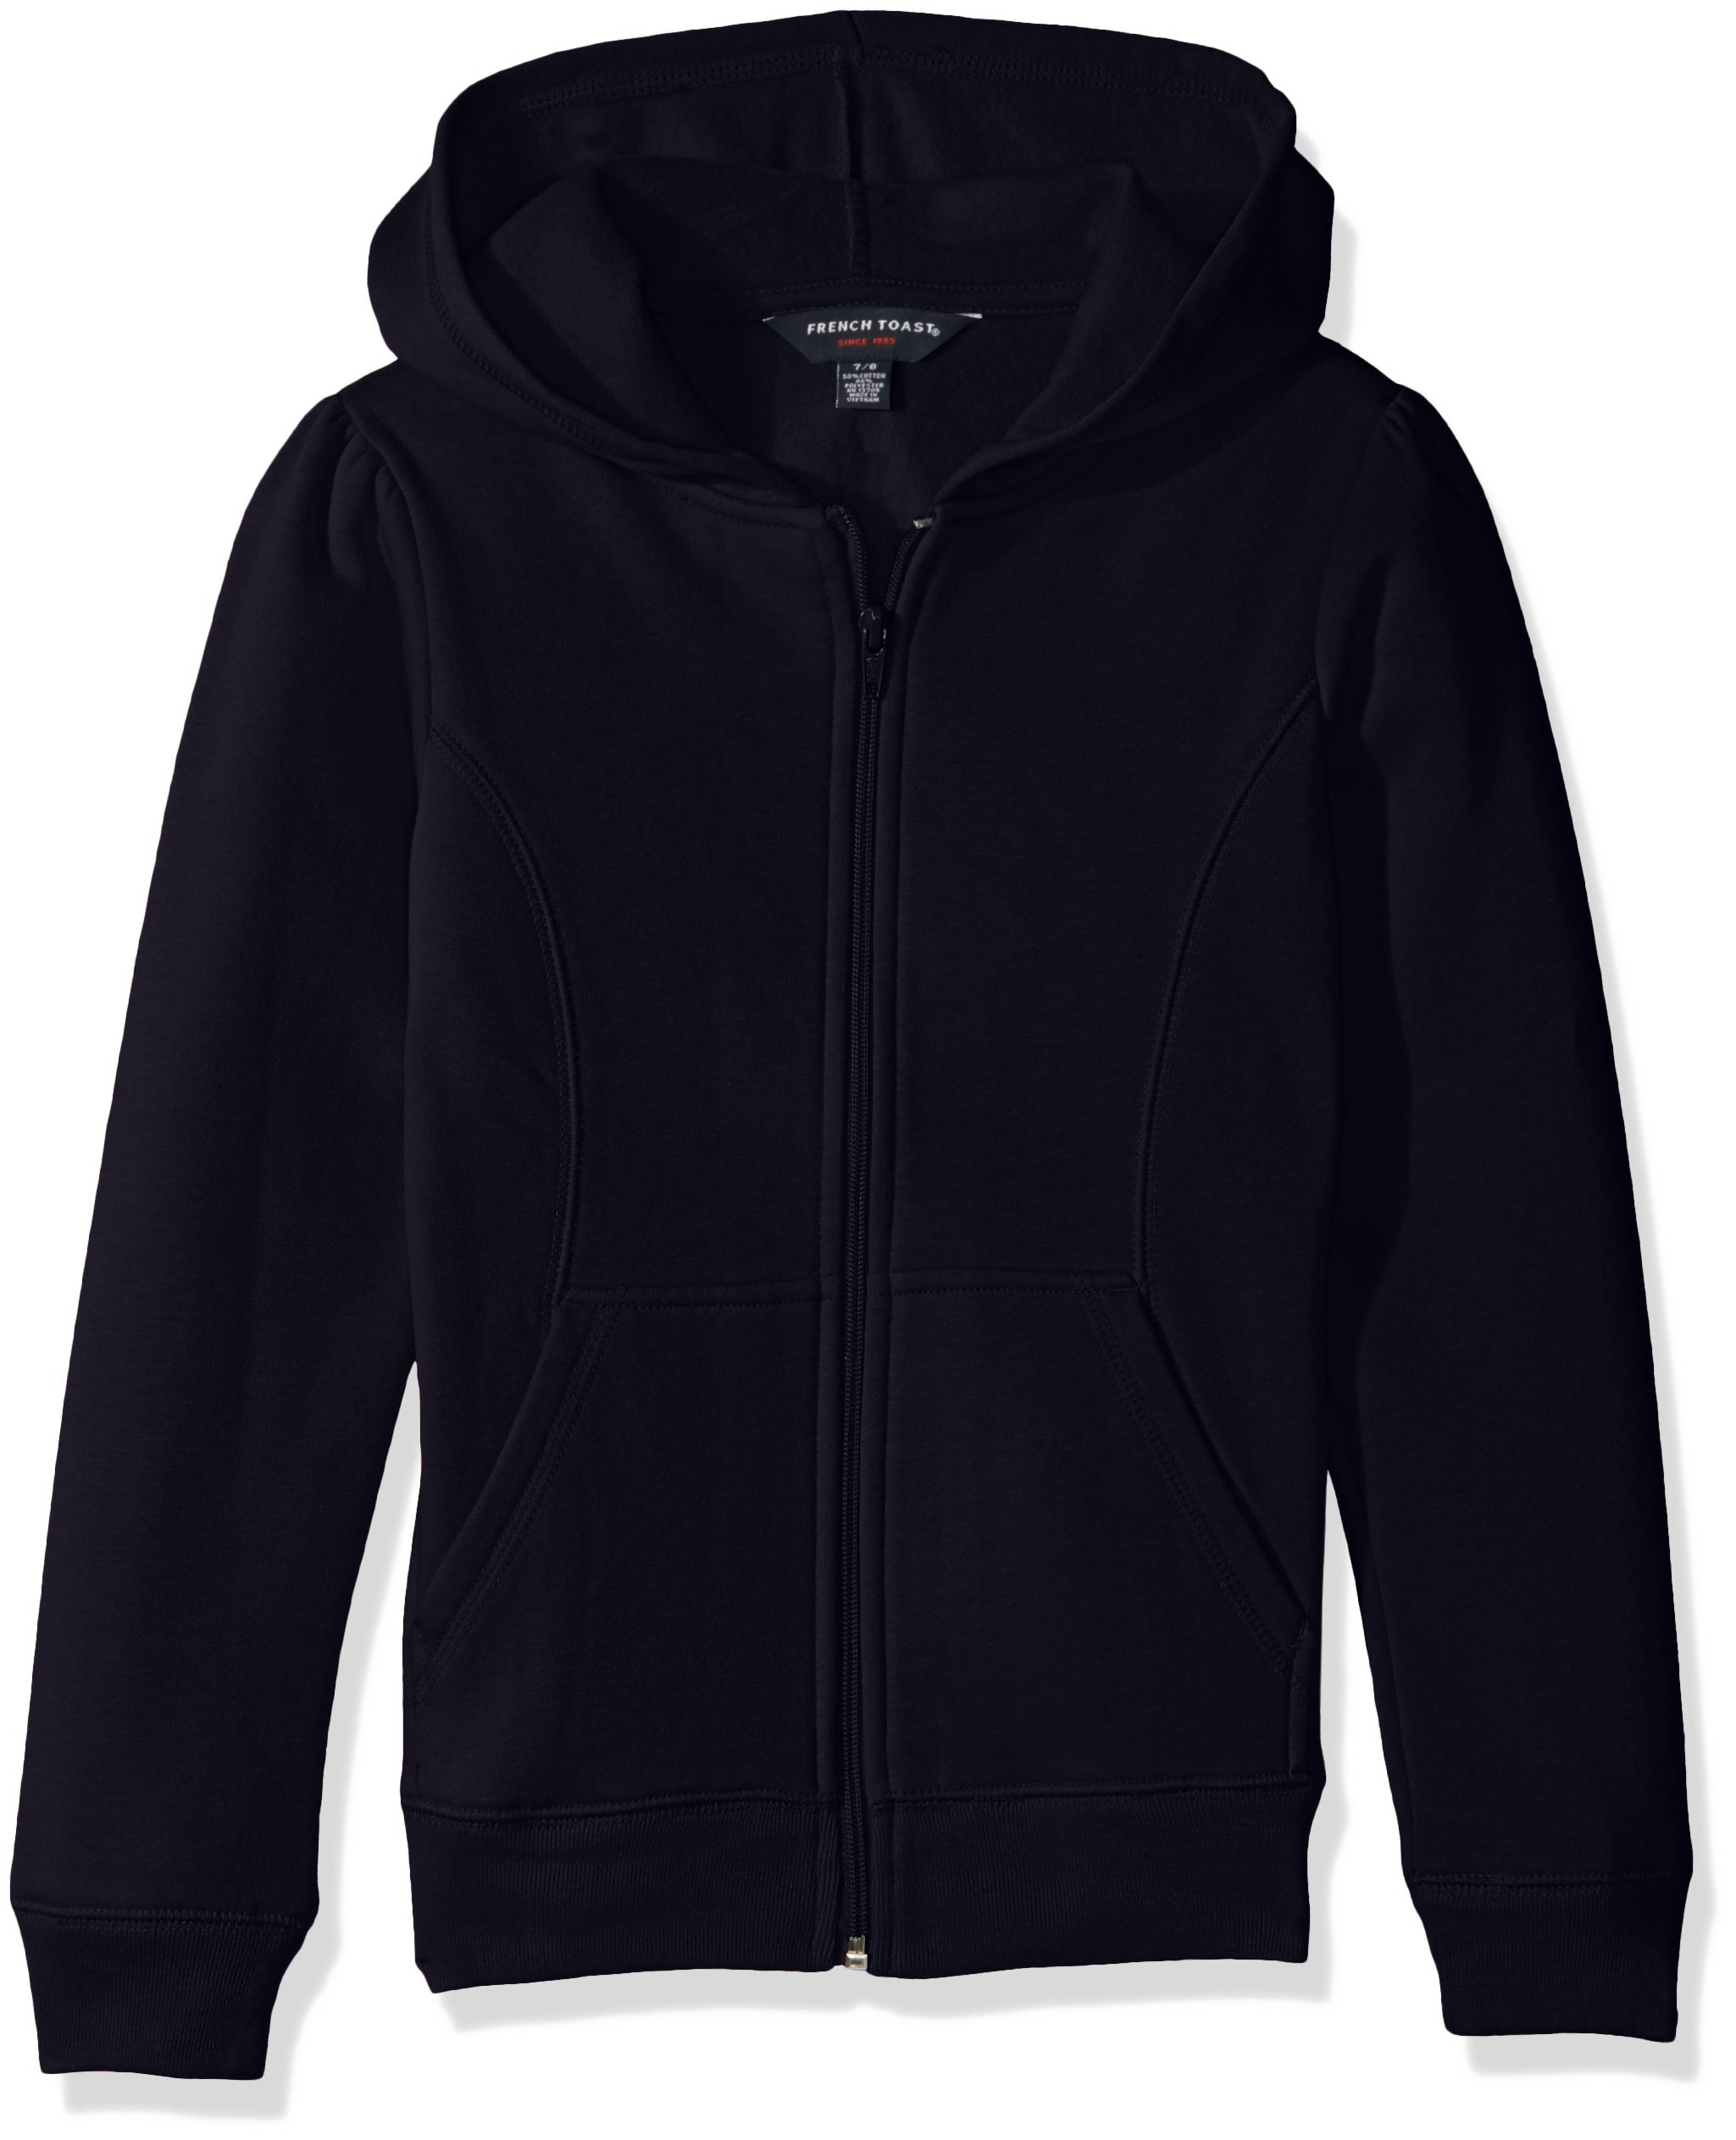 French Toast Big Girls' Fleece Hoodie, Navy, L (10/12) by French Toast (Image #1)